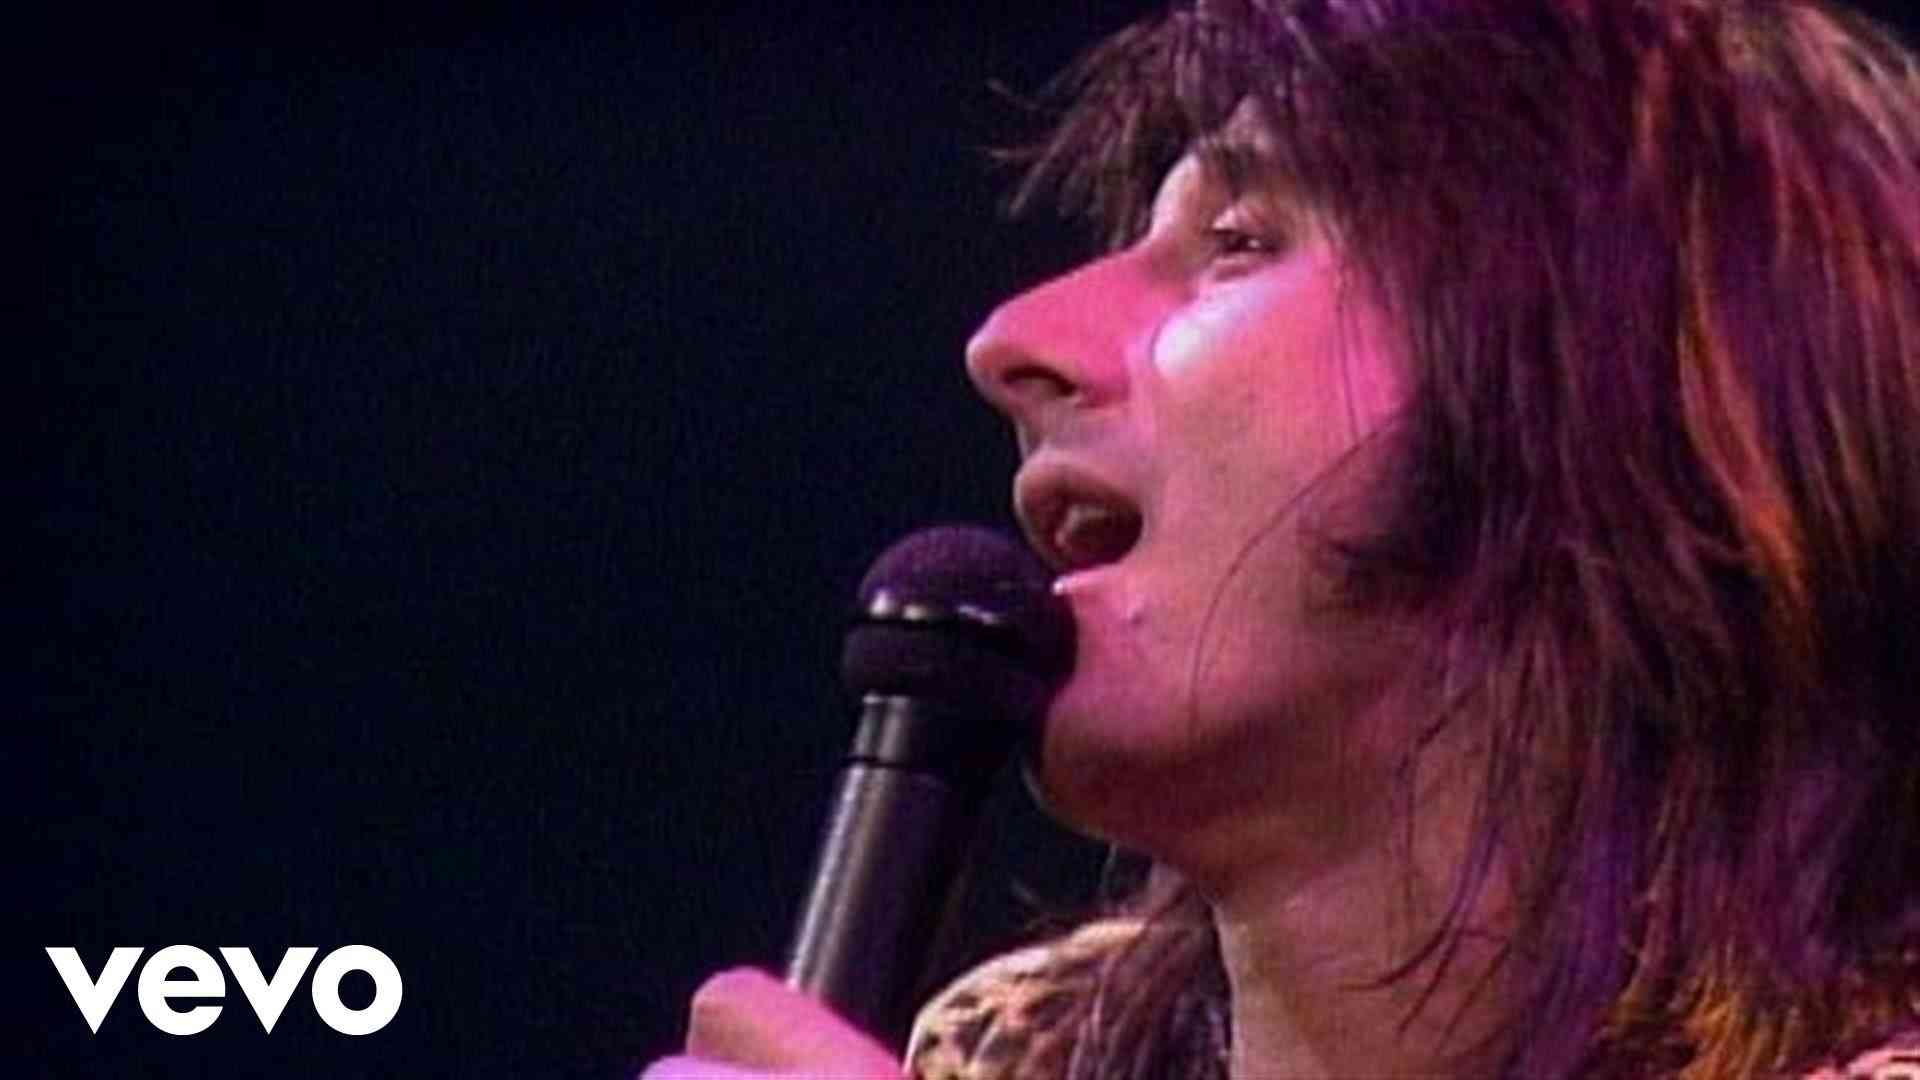 Journey - Don't Stop Believin' (Live in Houston) - YouTube